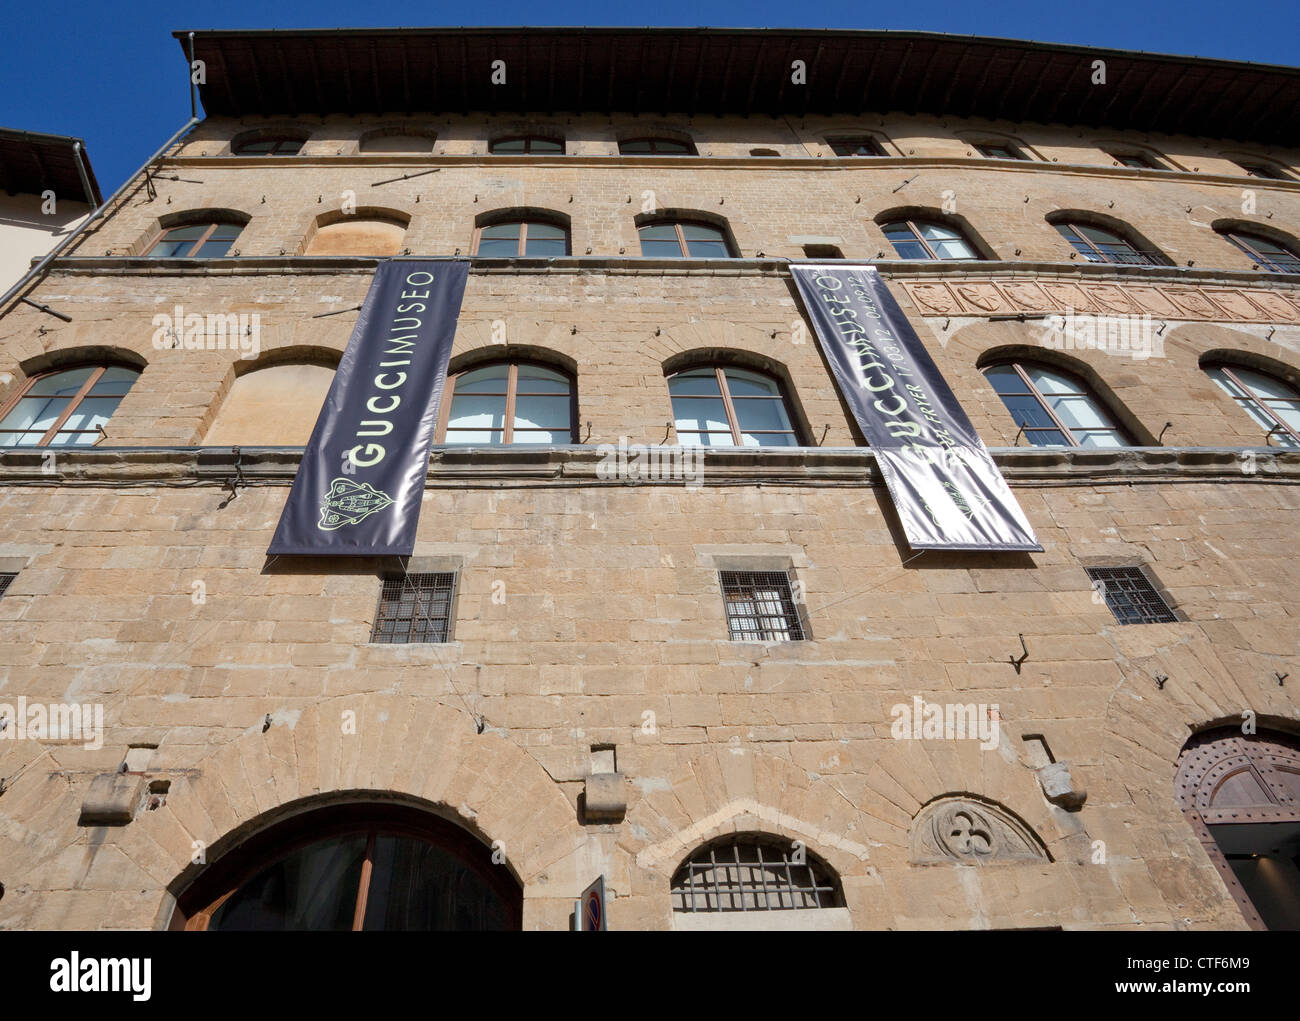 Gucci Museo.Gucci Museo Museum In Florence Italy Stock Photo 49507033 Alamy